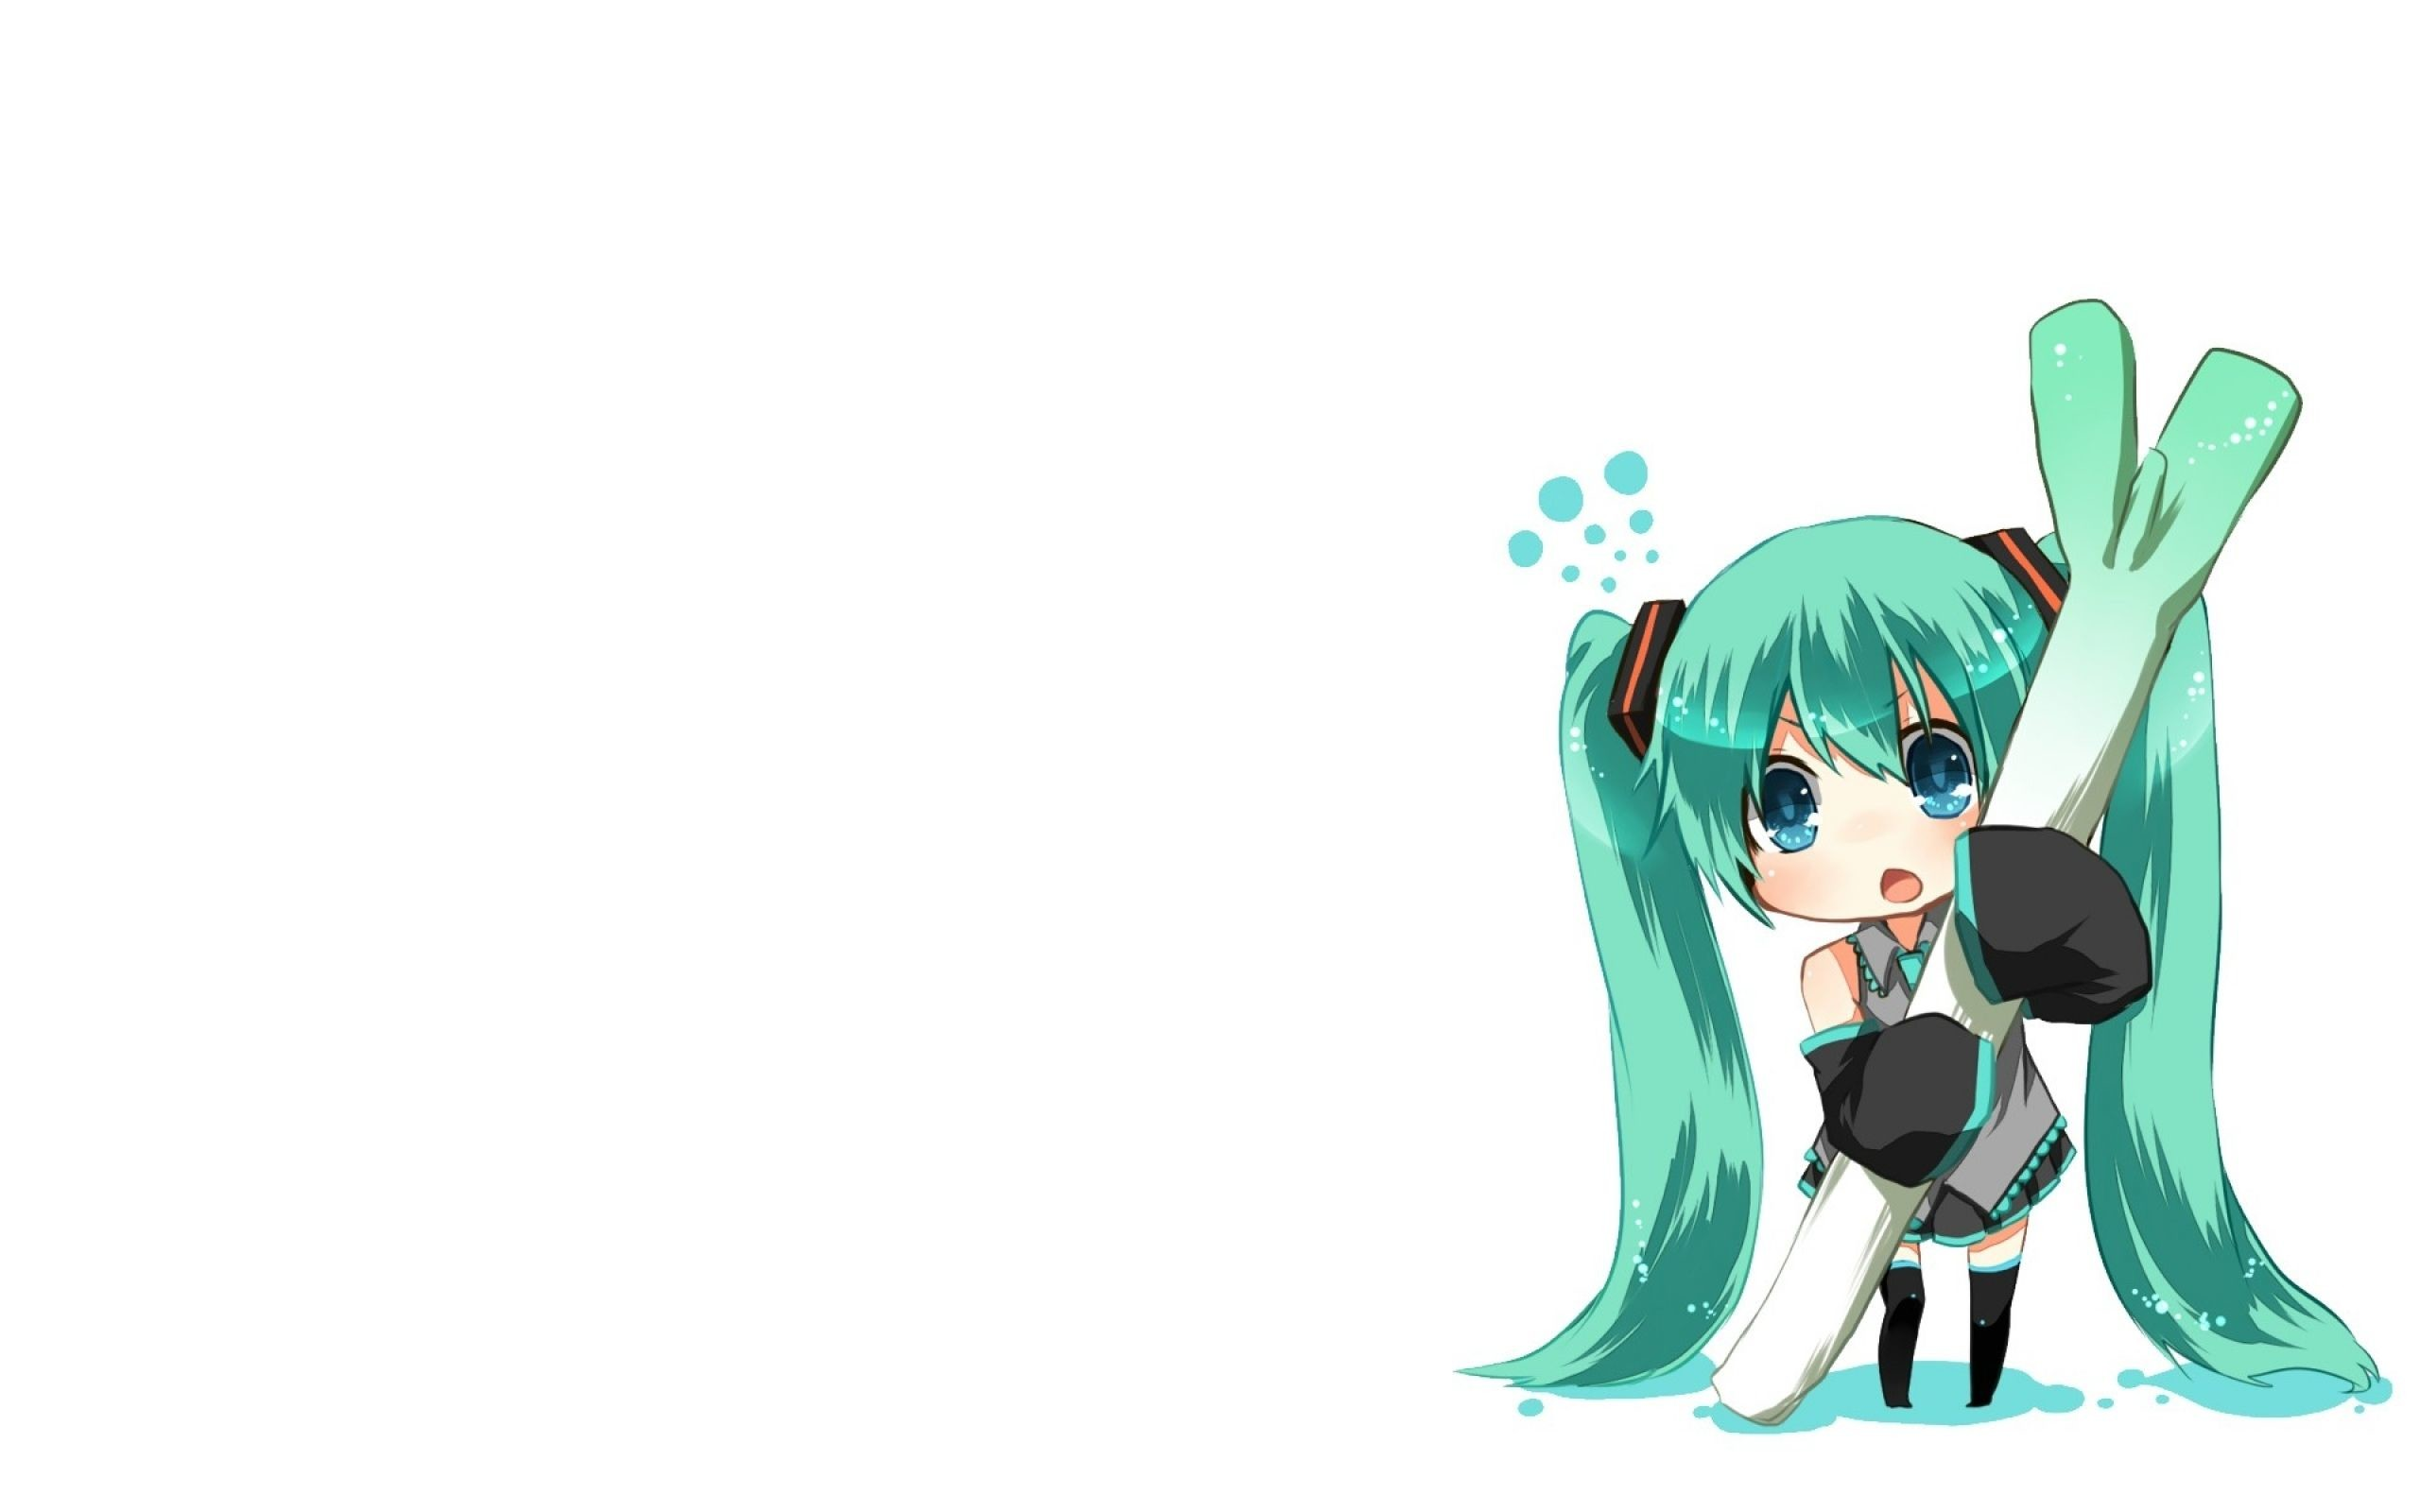 Free Anime Live Wallpaper For Android This Is A Cute - Hatsune Miku Chibi Wallpaper Android - HD Wallpaper